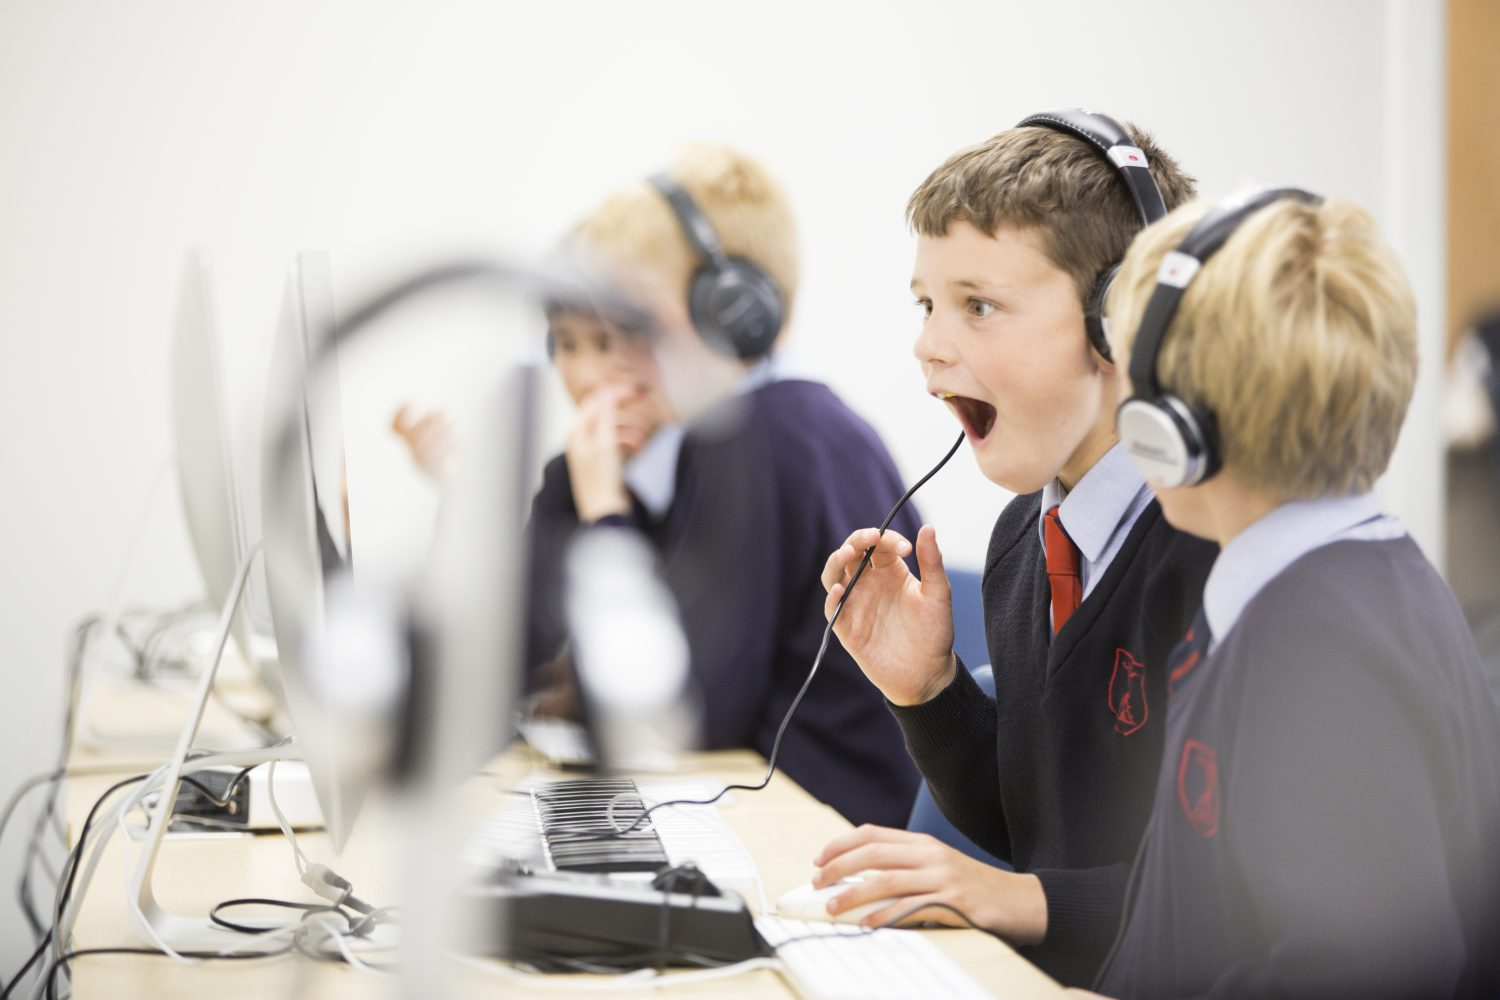 Young learners at The New Beacon School, Sevenoaks